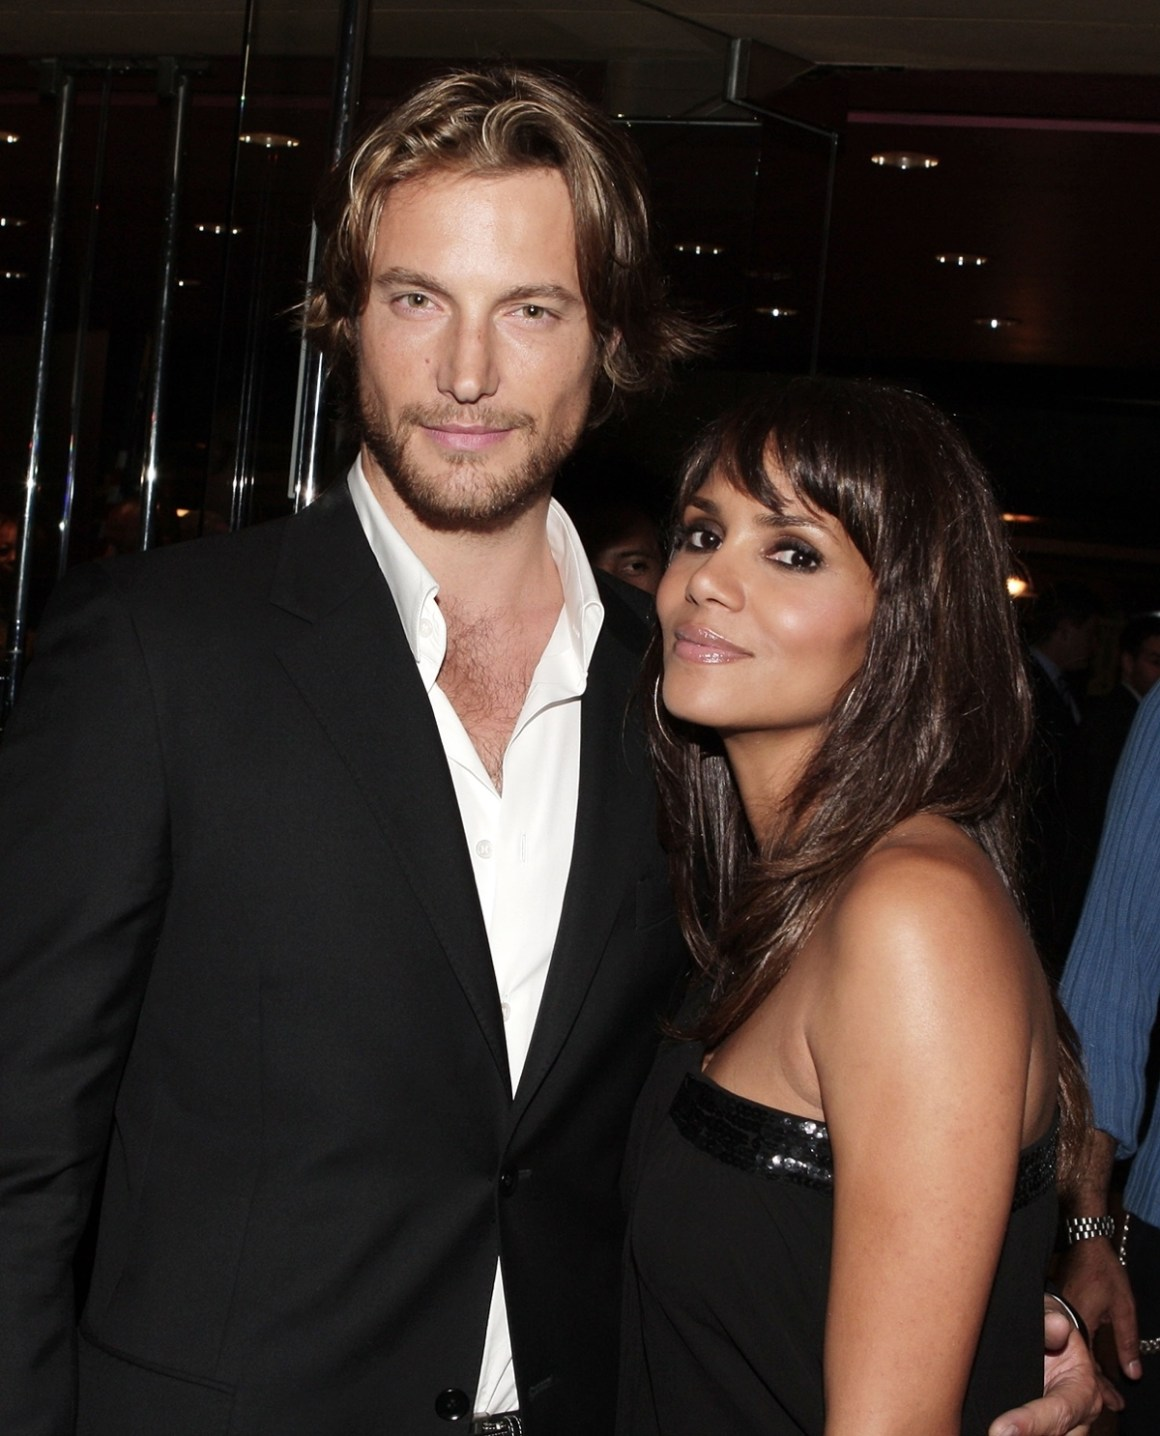 """Halle Berry and Gabriel Aubry Premiere of DreamWorks' """"Things We Lost in the Fire"""" - Afterparty"""